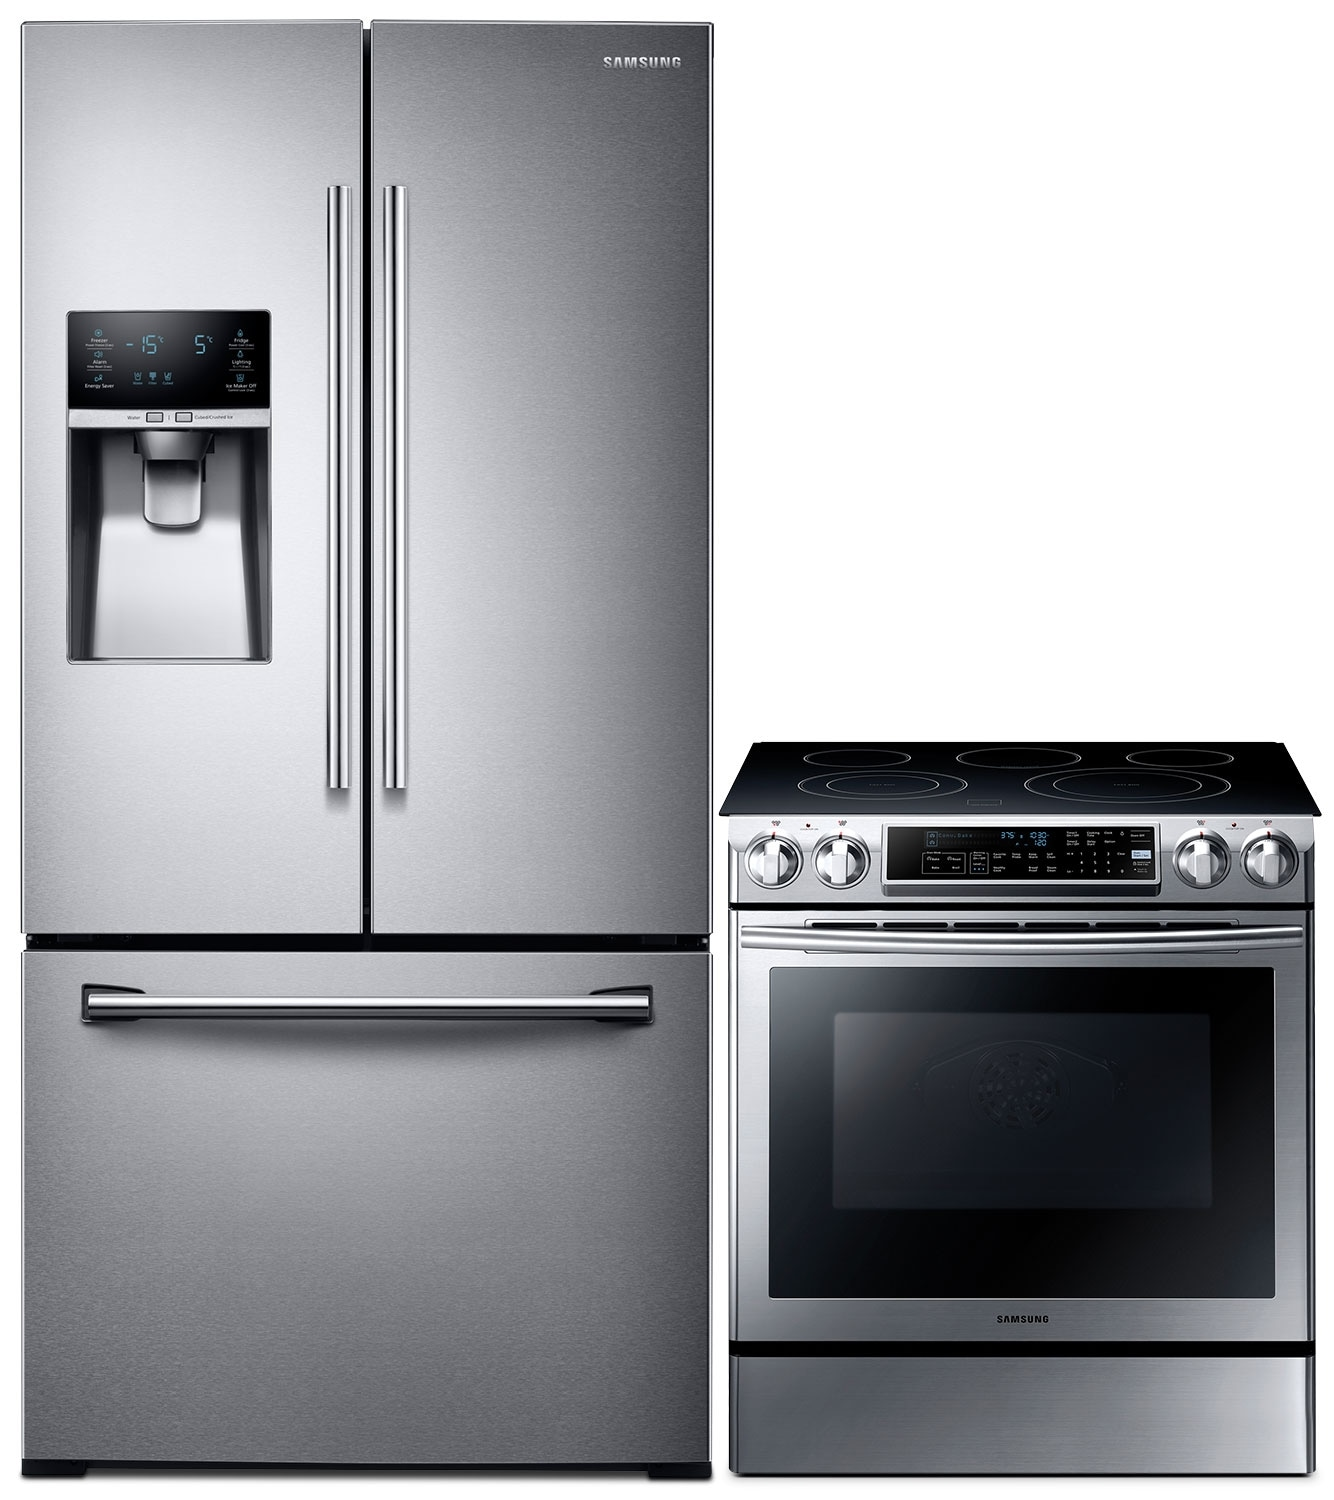 Samsung 25.5 Cu. Ft. Refrigerator and 5.8 Cu Ft. Electric Range